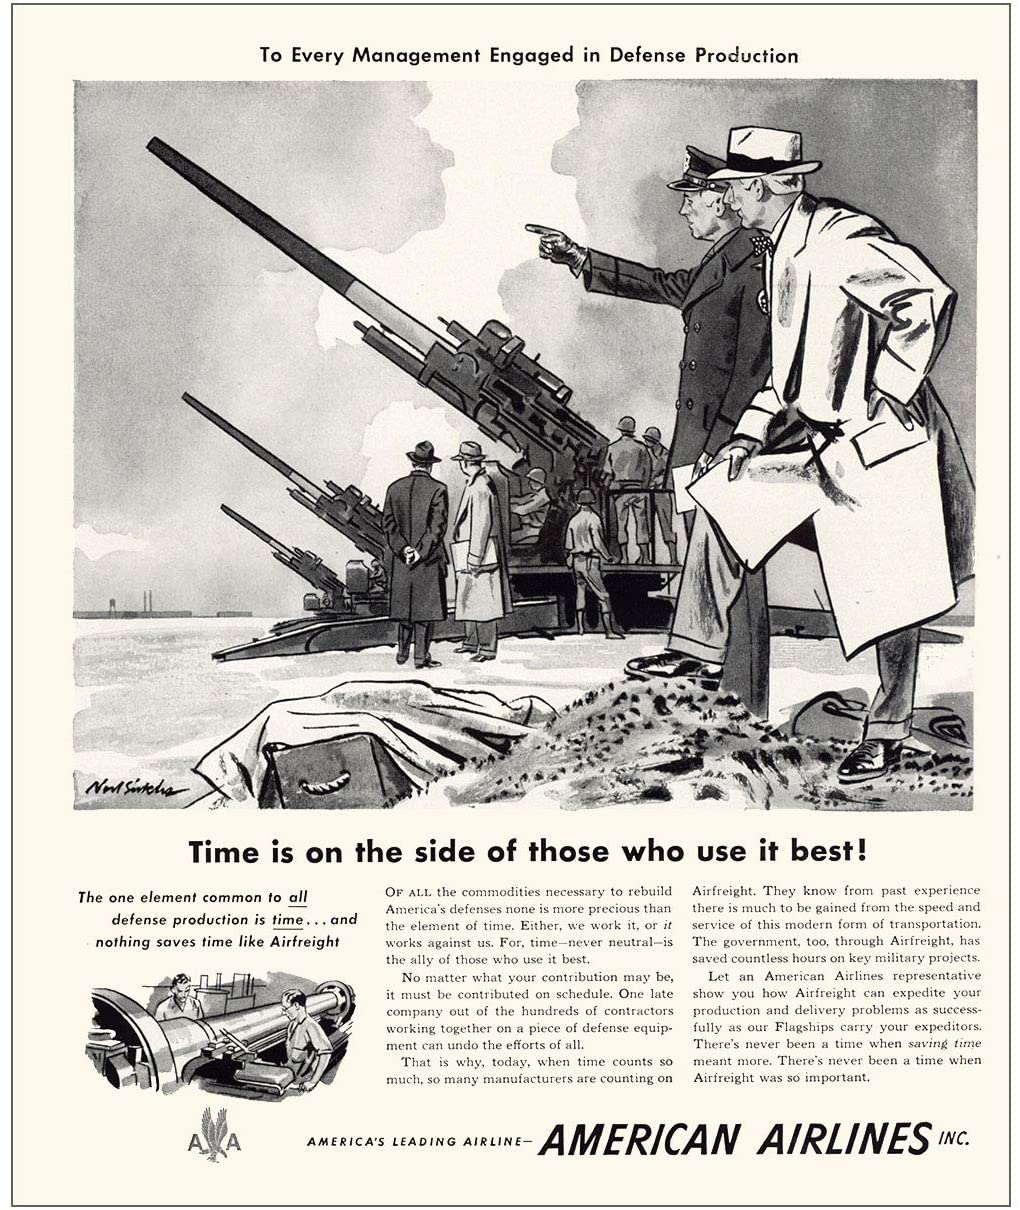 RelicPaper 1951 American Airlines: Time is On The Side, American Airlines Print Ad